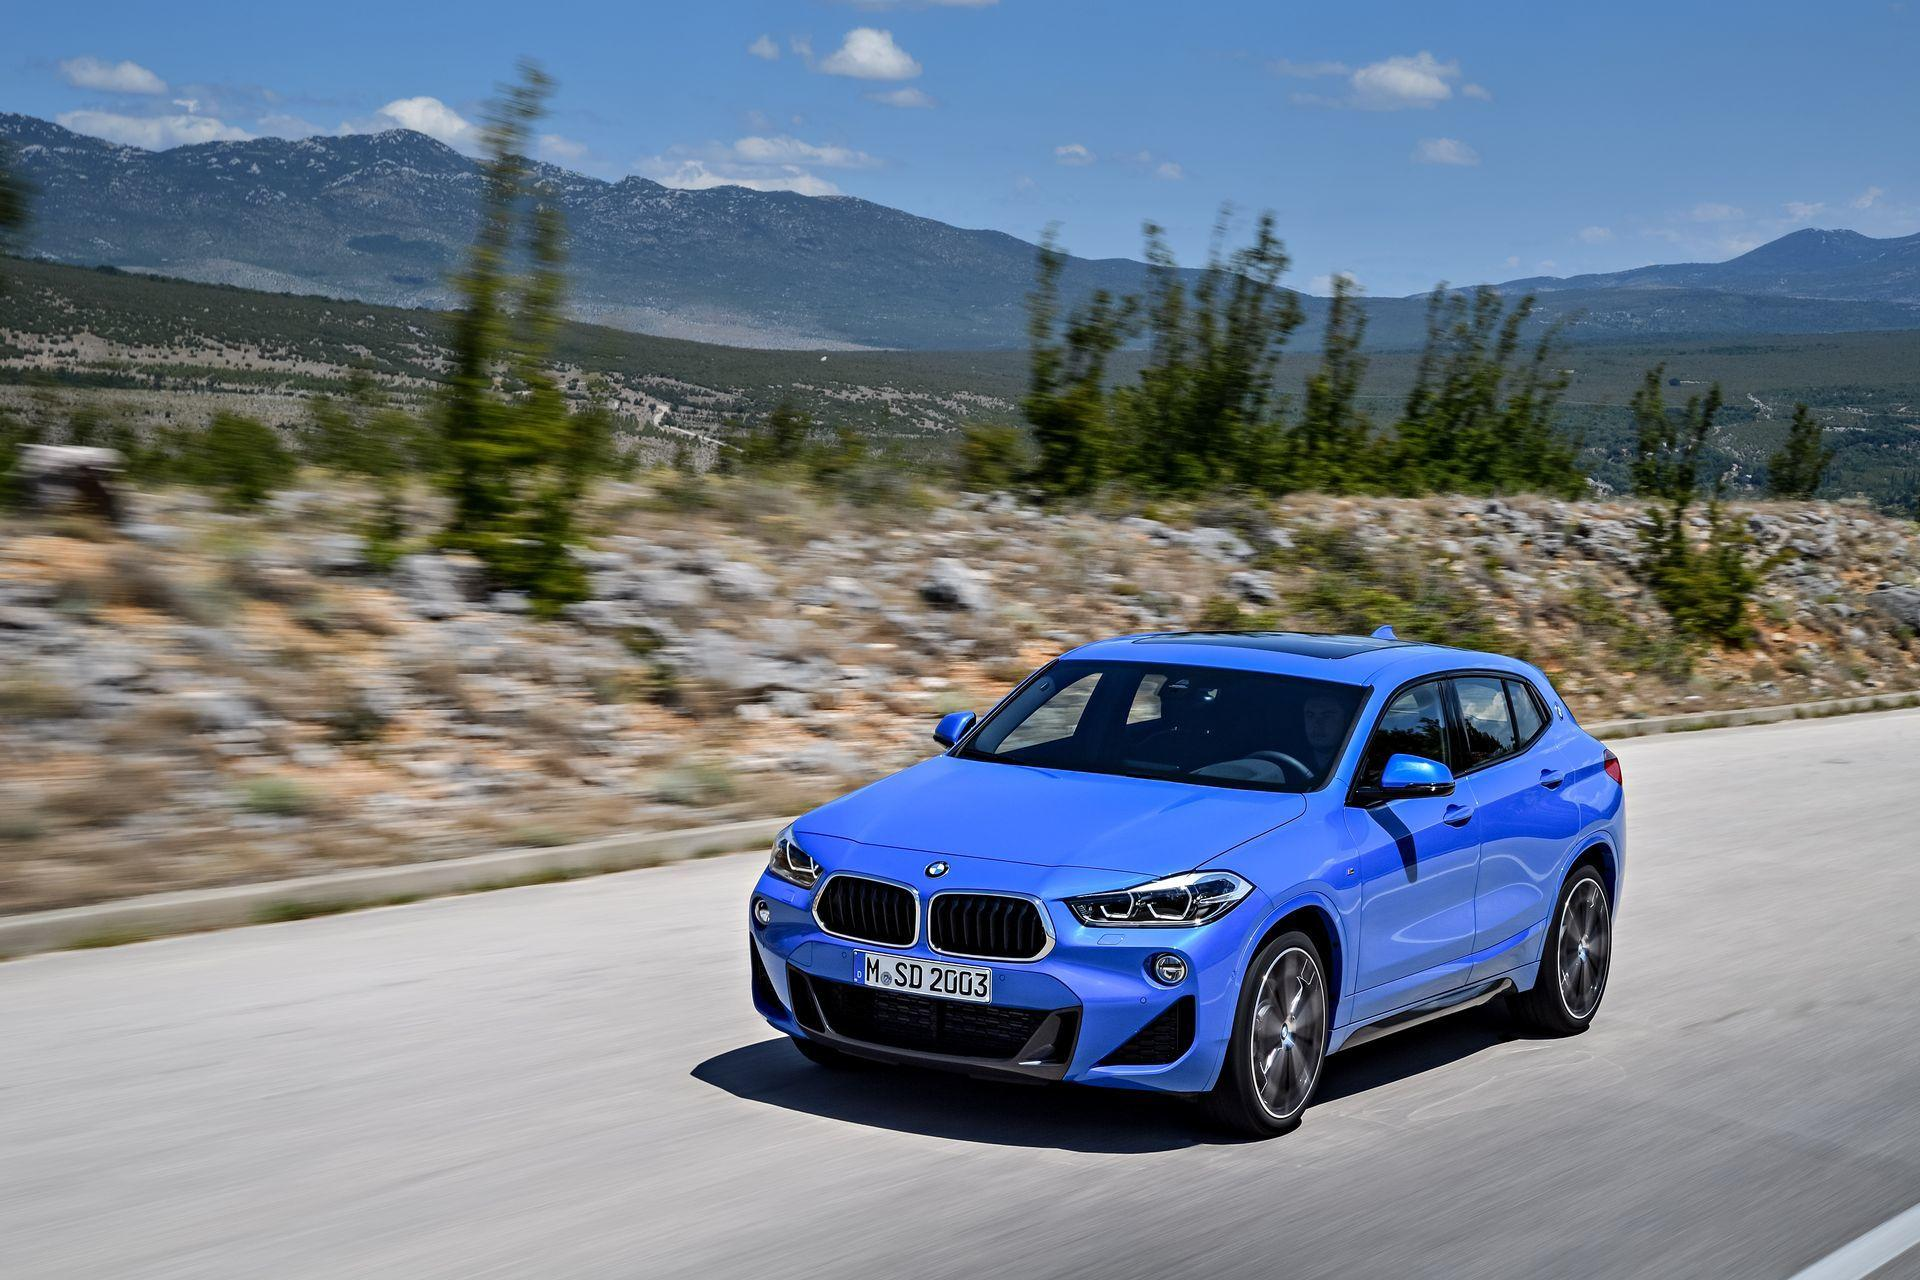 Bmw X2 Sdrive18d 6v